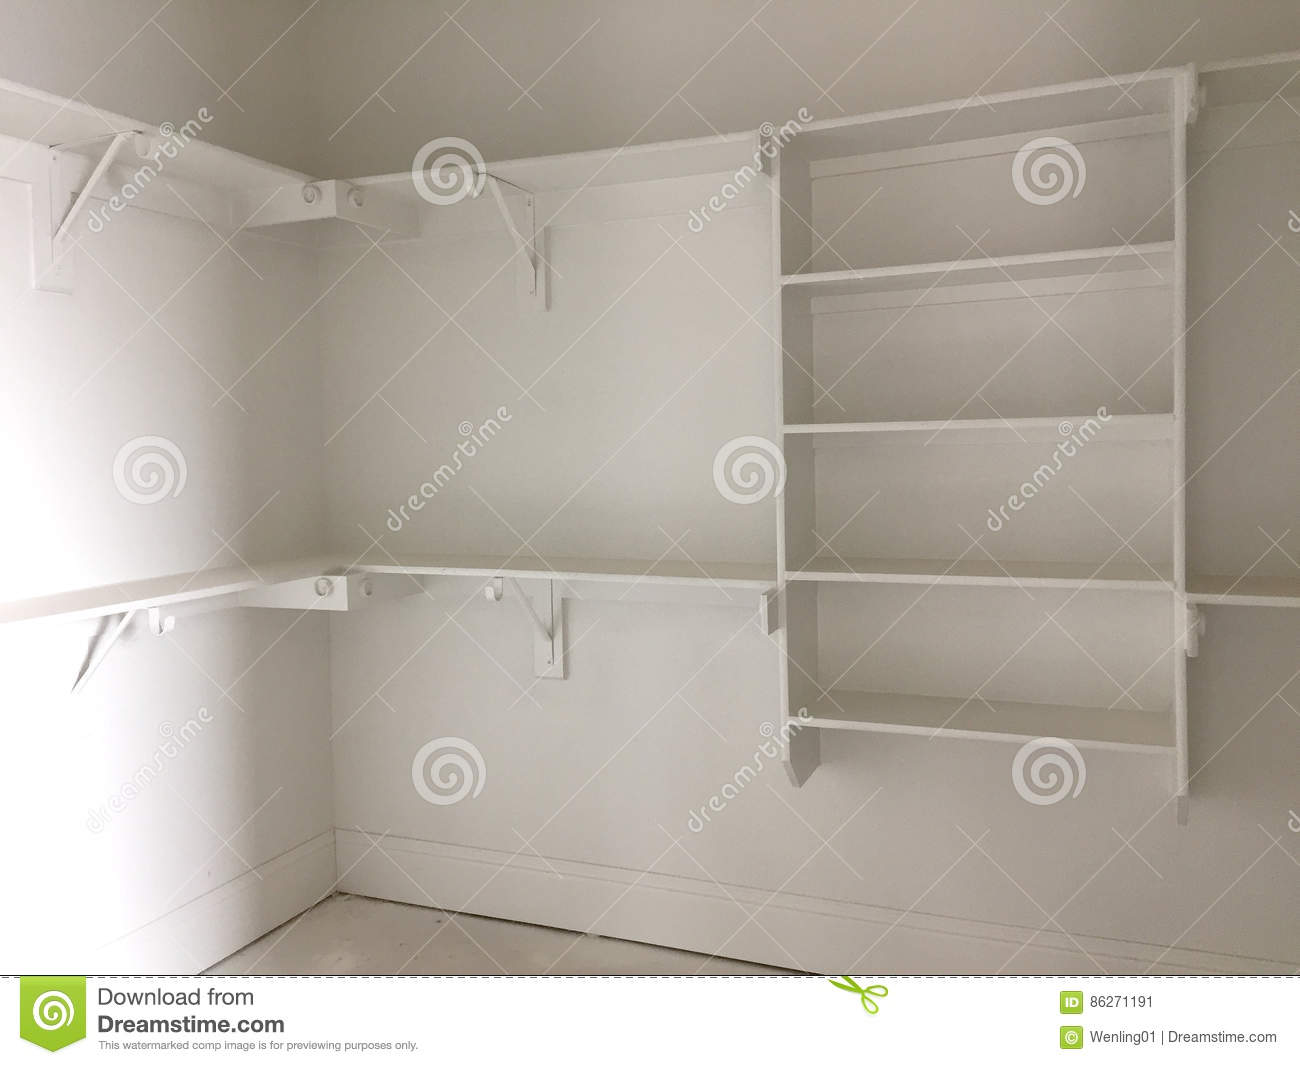 A closet for clothing in new house